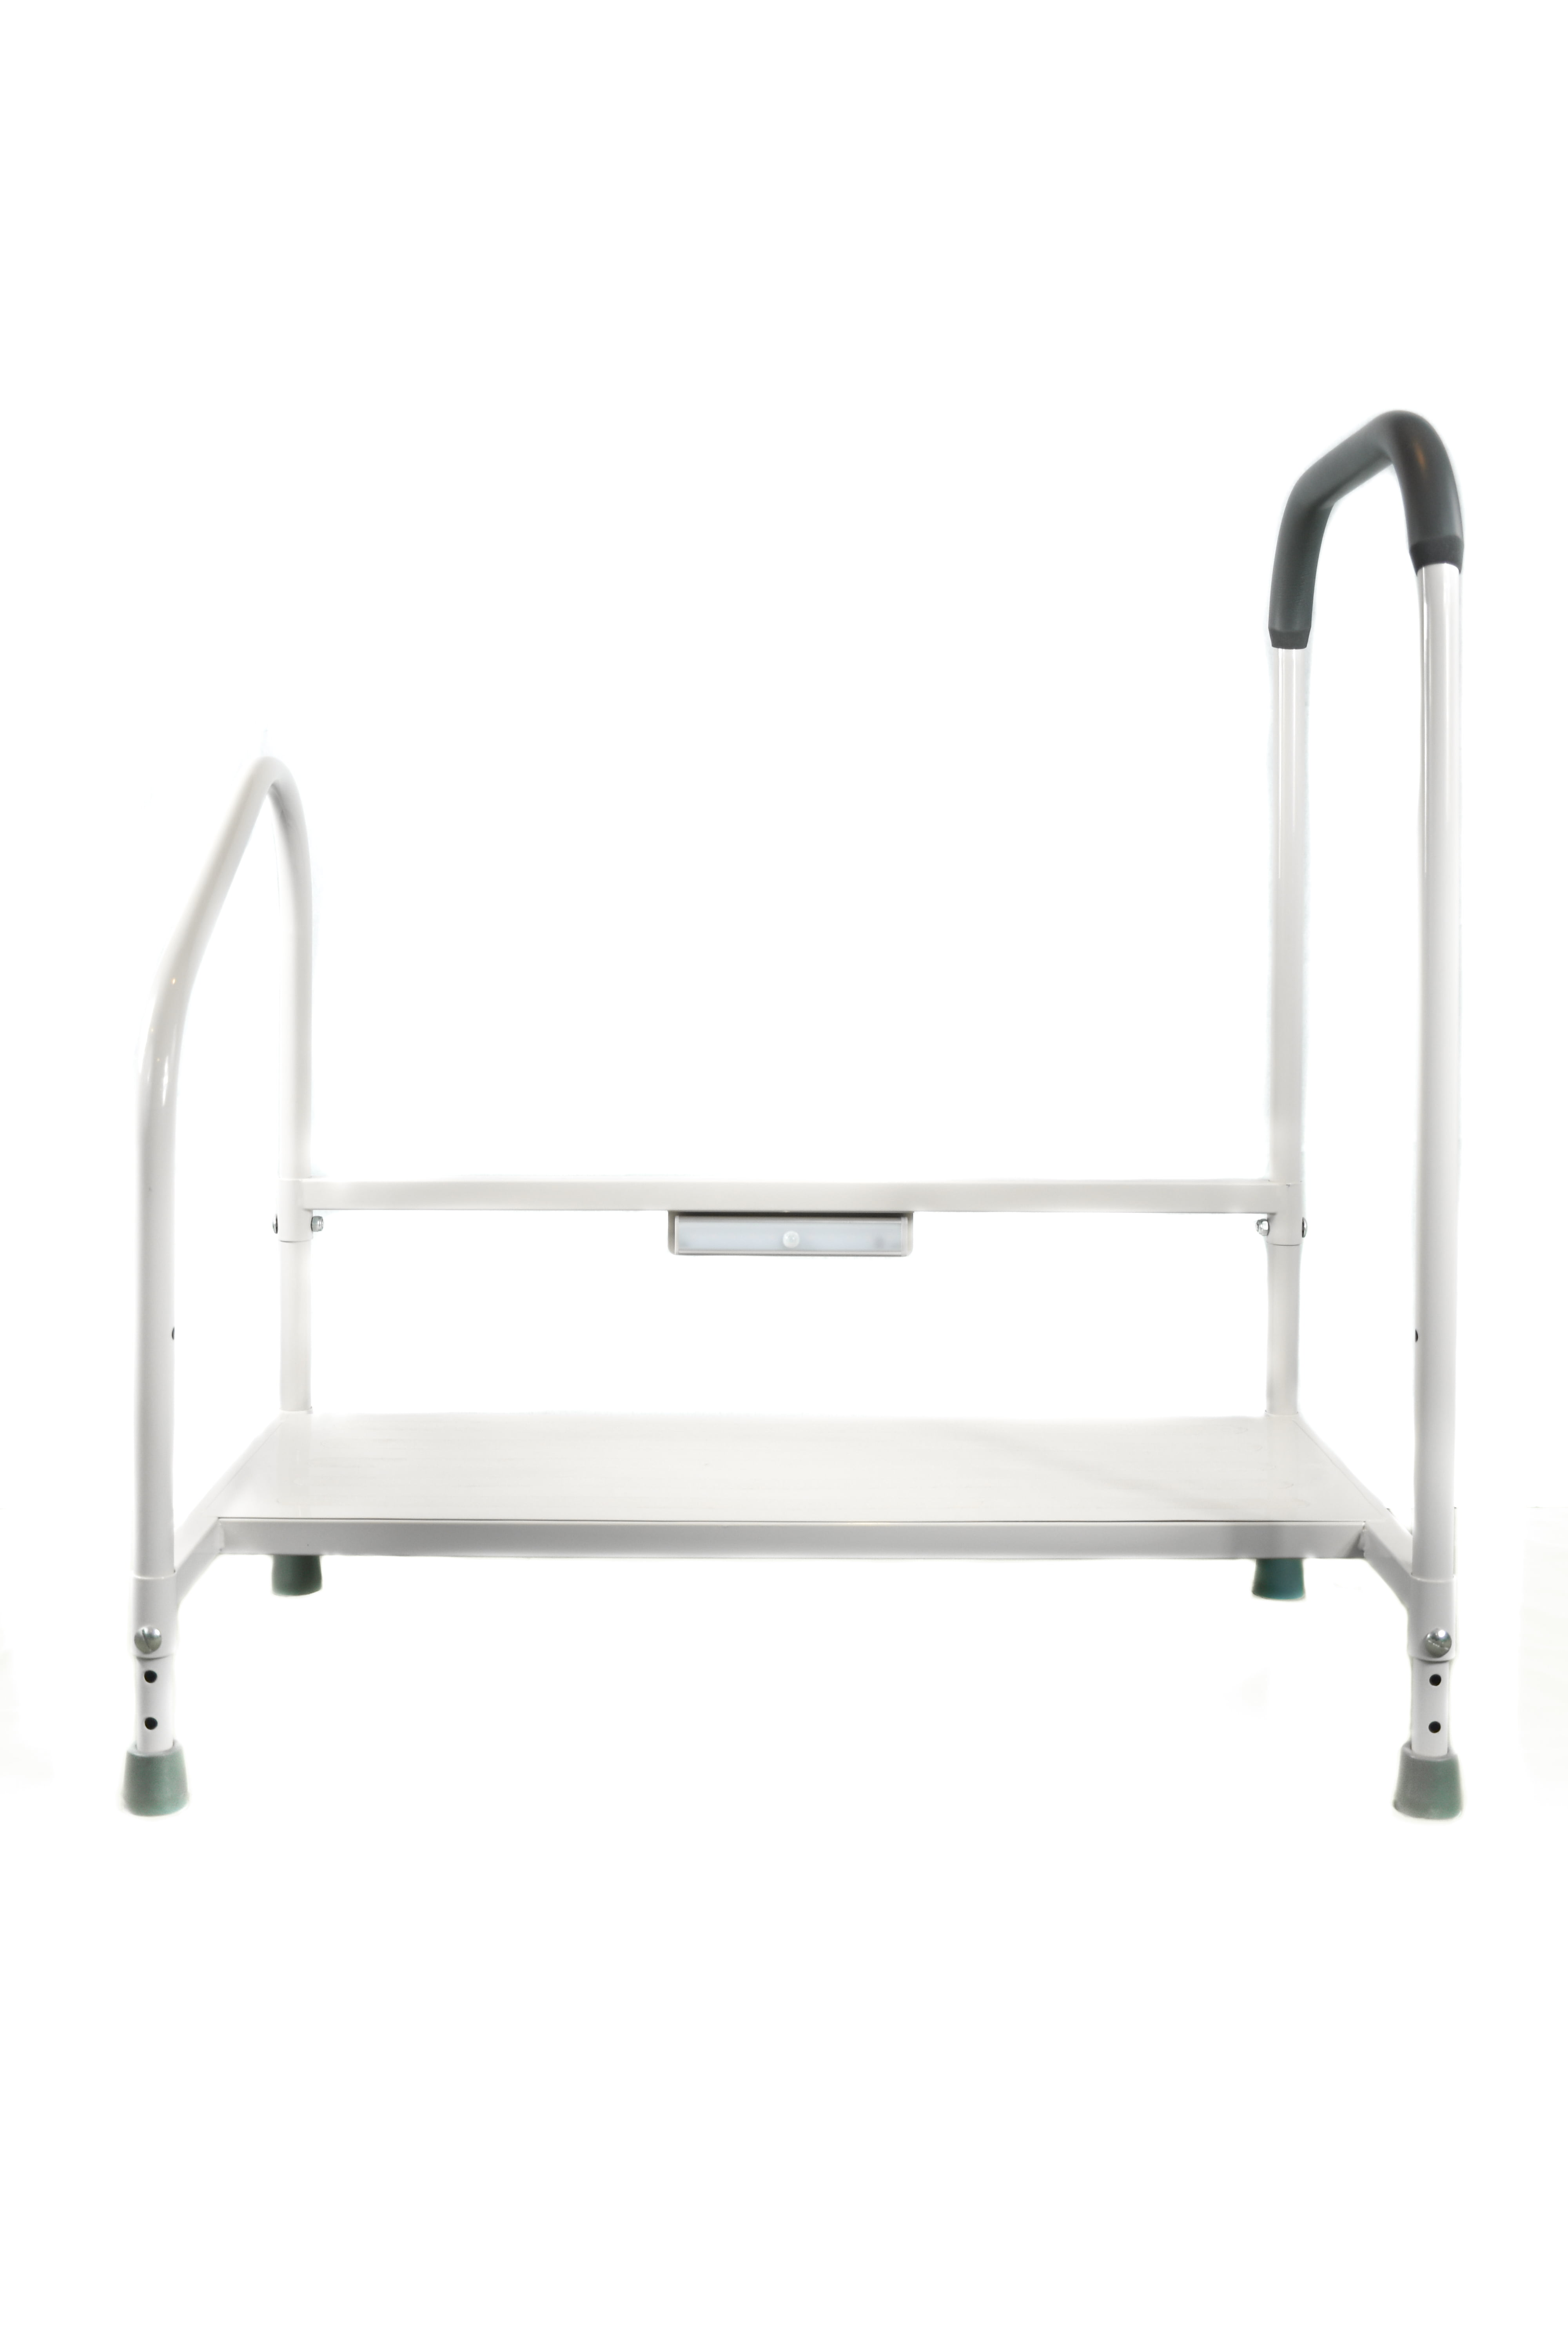 Bed Step Stool: Step2Bed Bed Hand Rail Adjustable Height Bed Step Stool